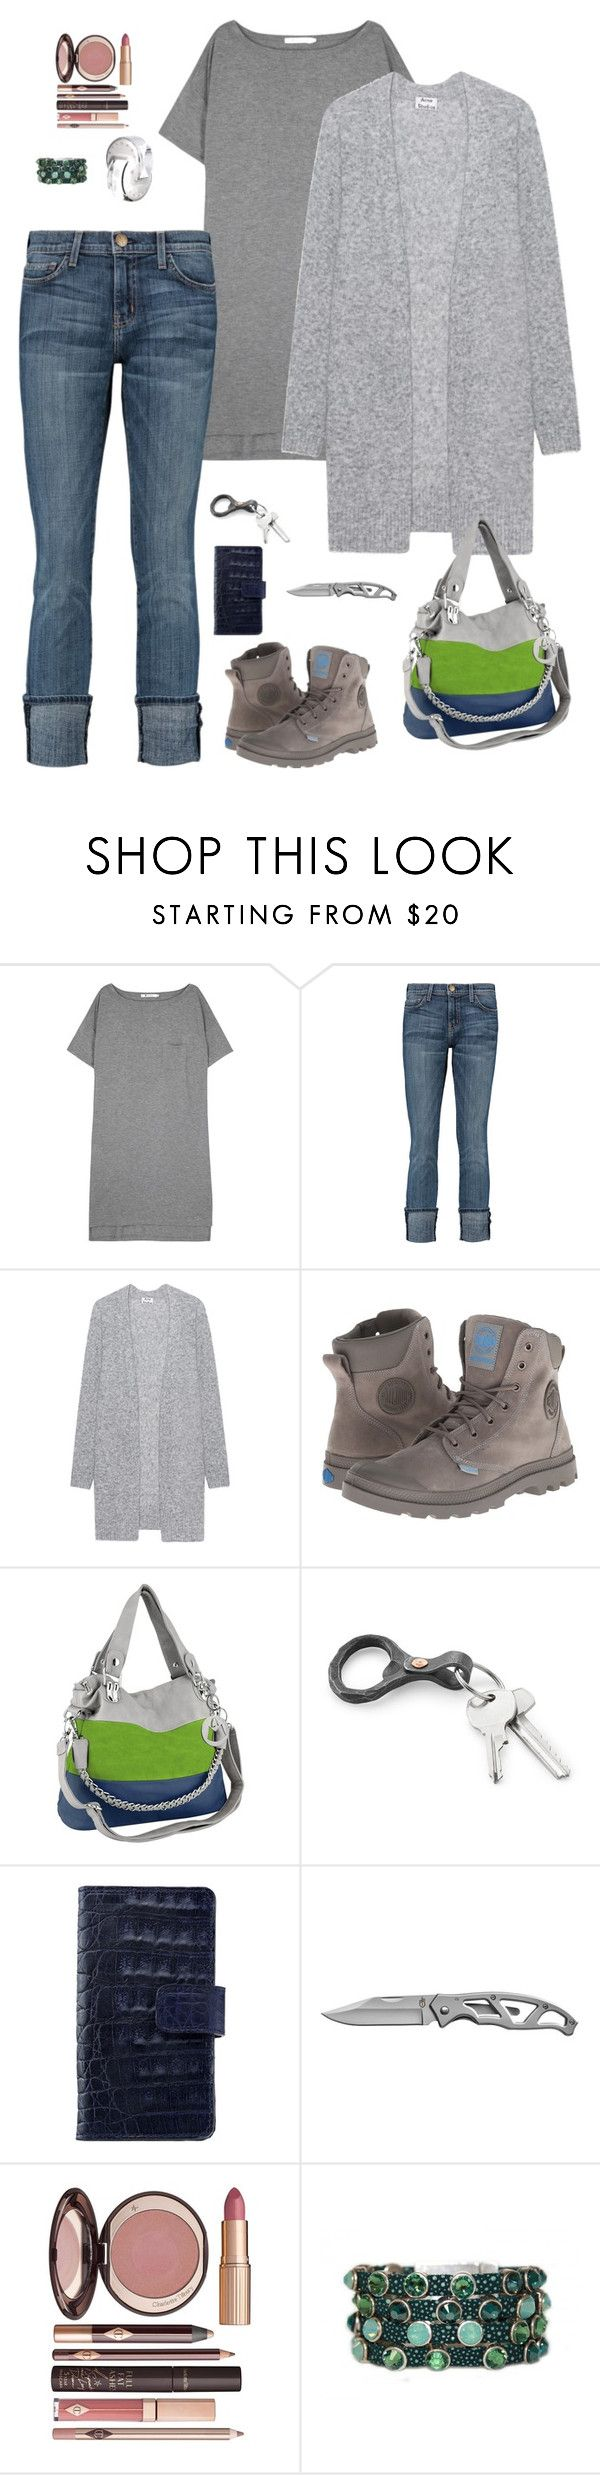 """""""Me today"""" by stacy-hardy ❤ liked on Polyvore featuring T By Alexander Wang, Current/Elliott, Acne Studios, Palladium, Anne Sisteron, Bulgari, Charlotte Tilbury and HEET"""